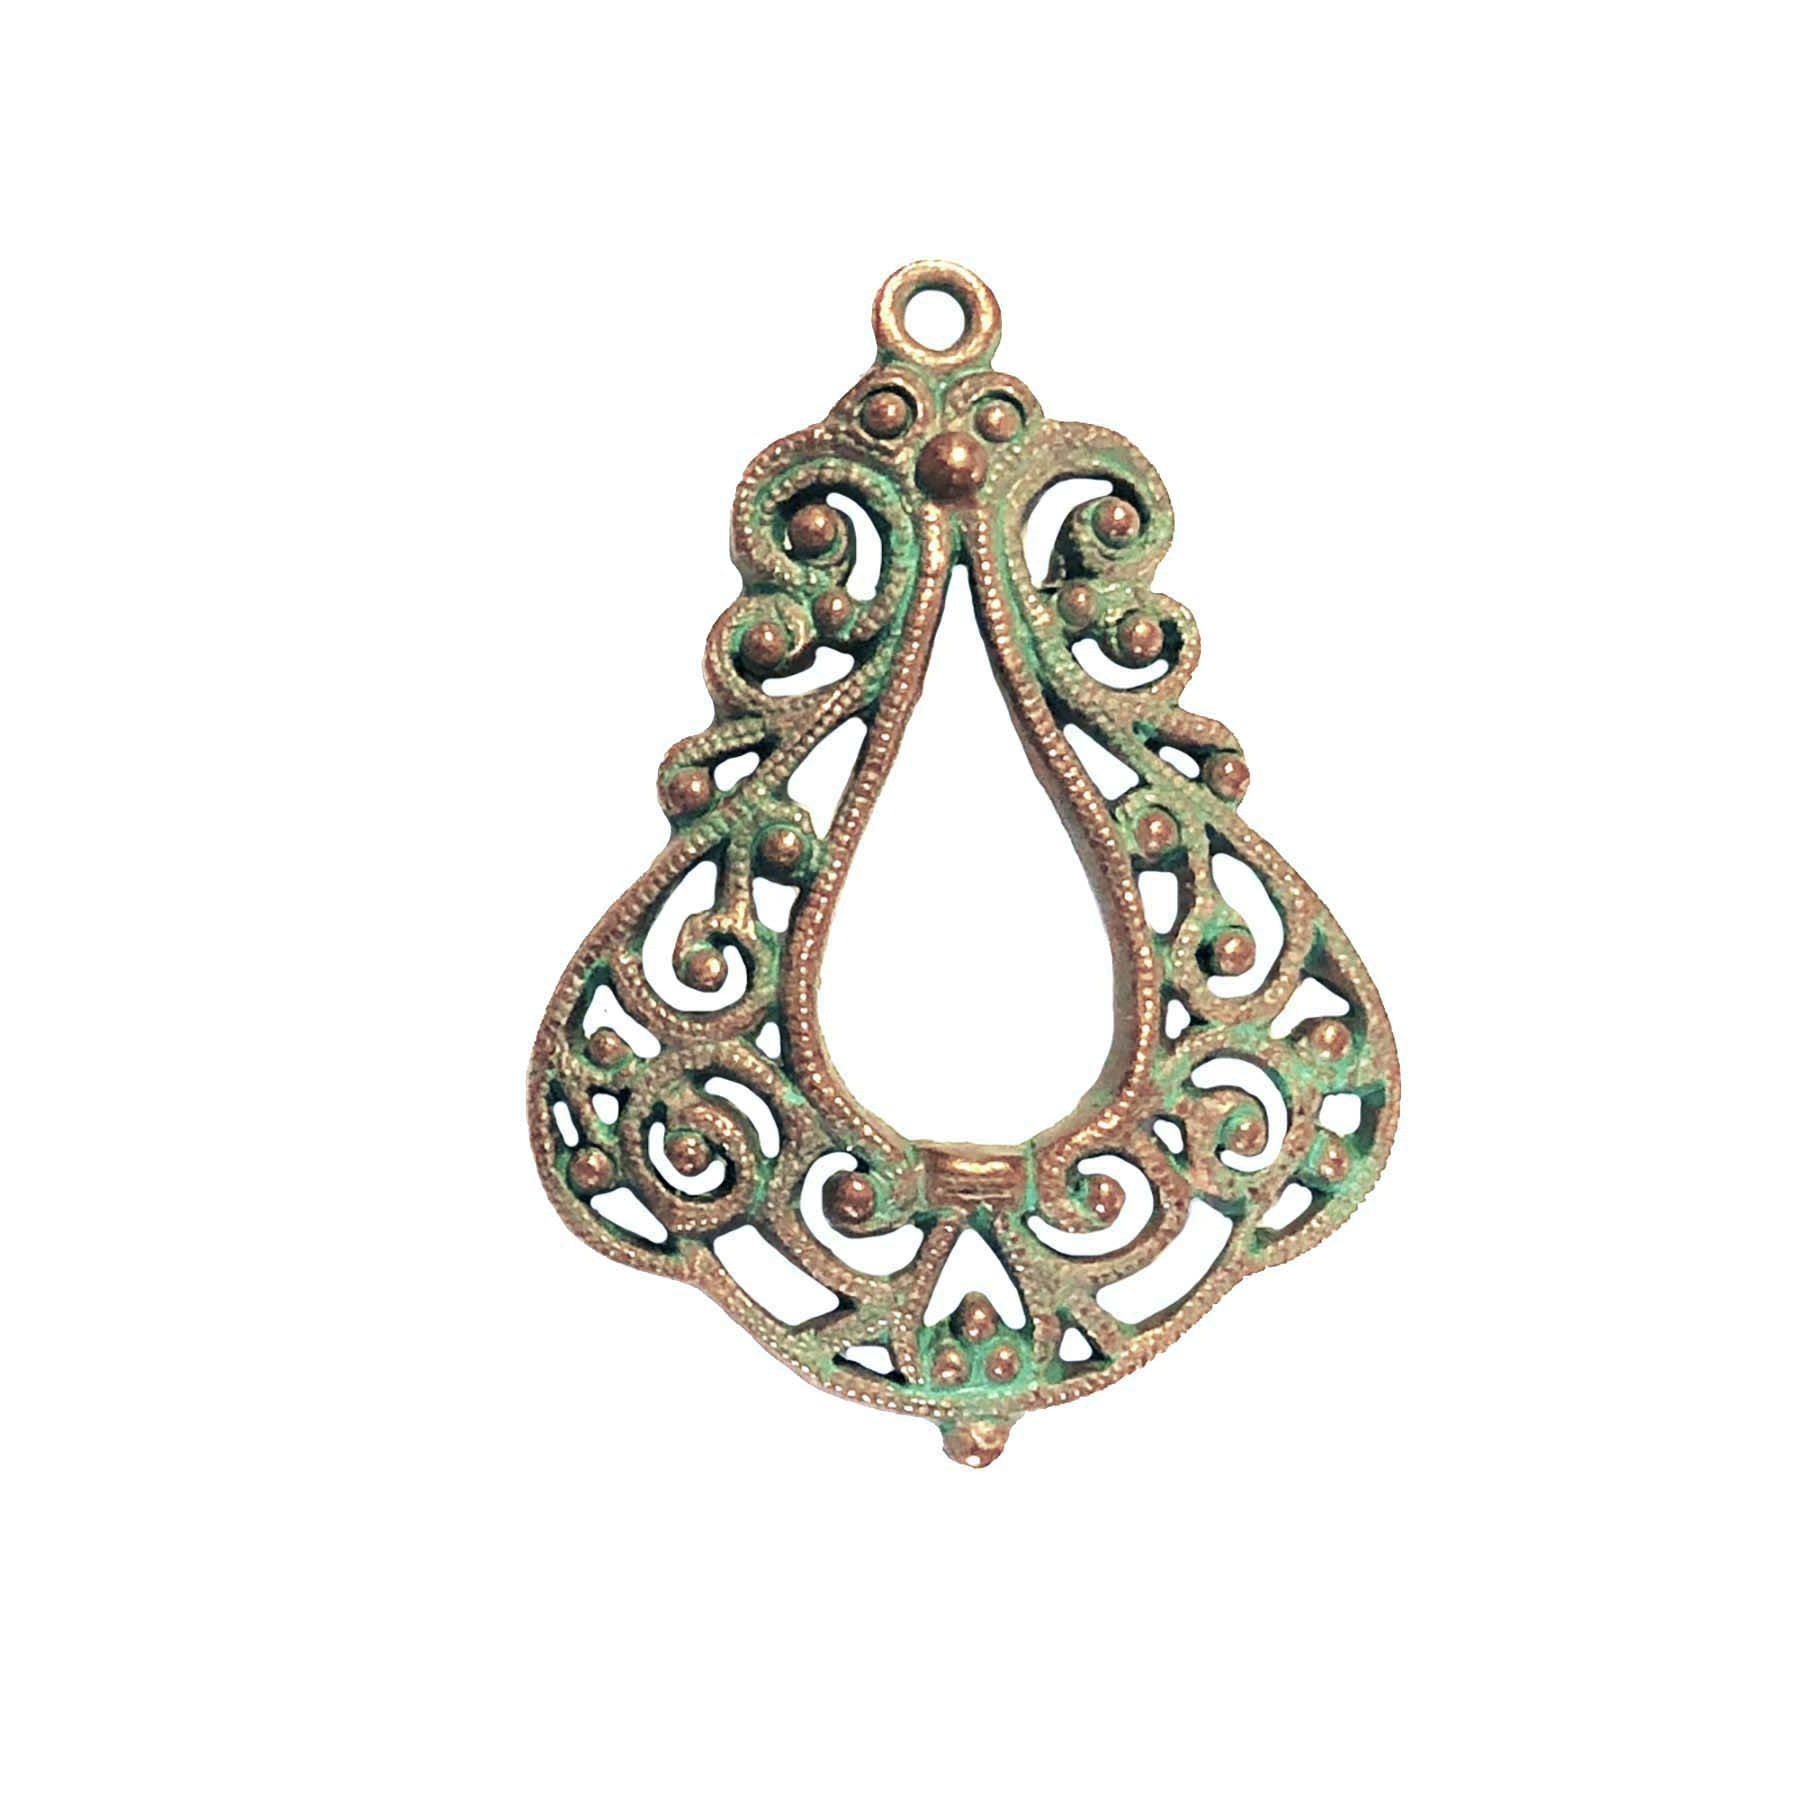 vintage pewter castings, B'sue by 1928, weathered copper, nickel free finish, lead free pewter, vintage castings, green patina, made in the USA,  designer jewelry, vintage jewelry making supplies, filigree pendant, 0654, B'sue Boutiques